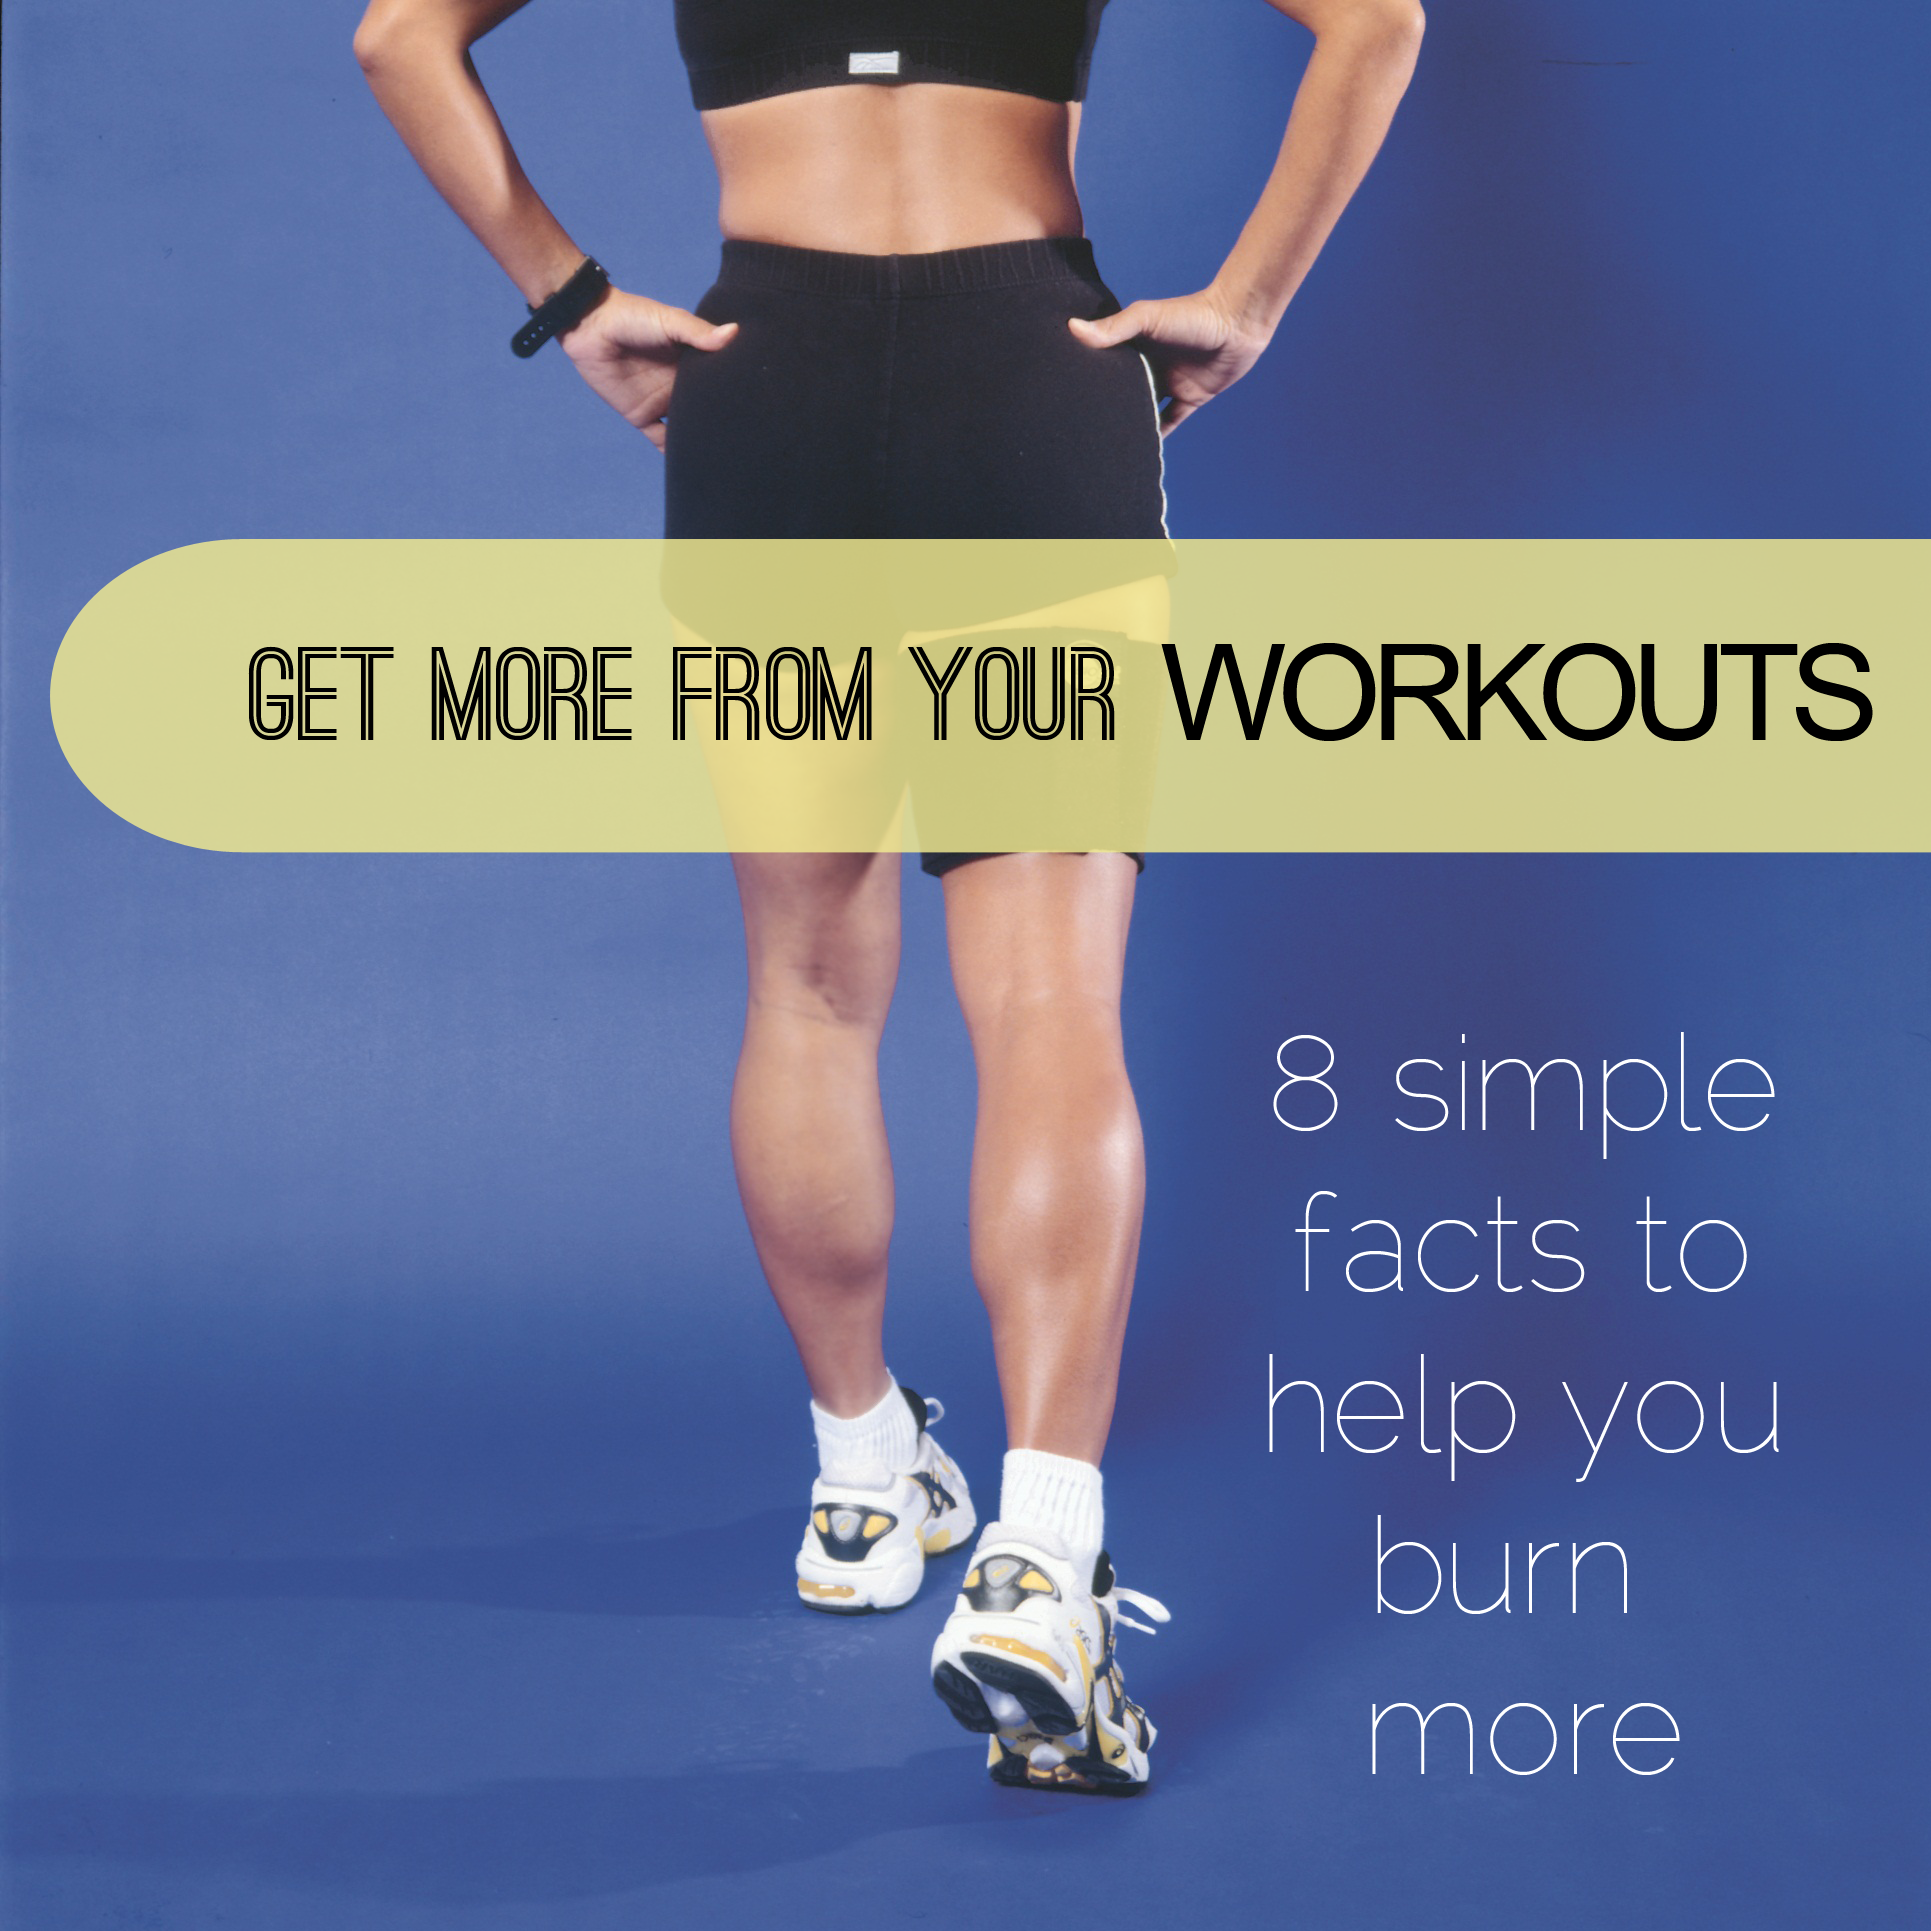 Things to know to easily get more from your workouts!